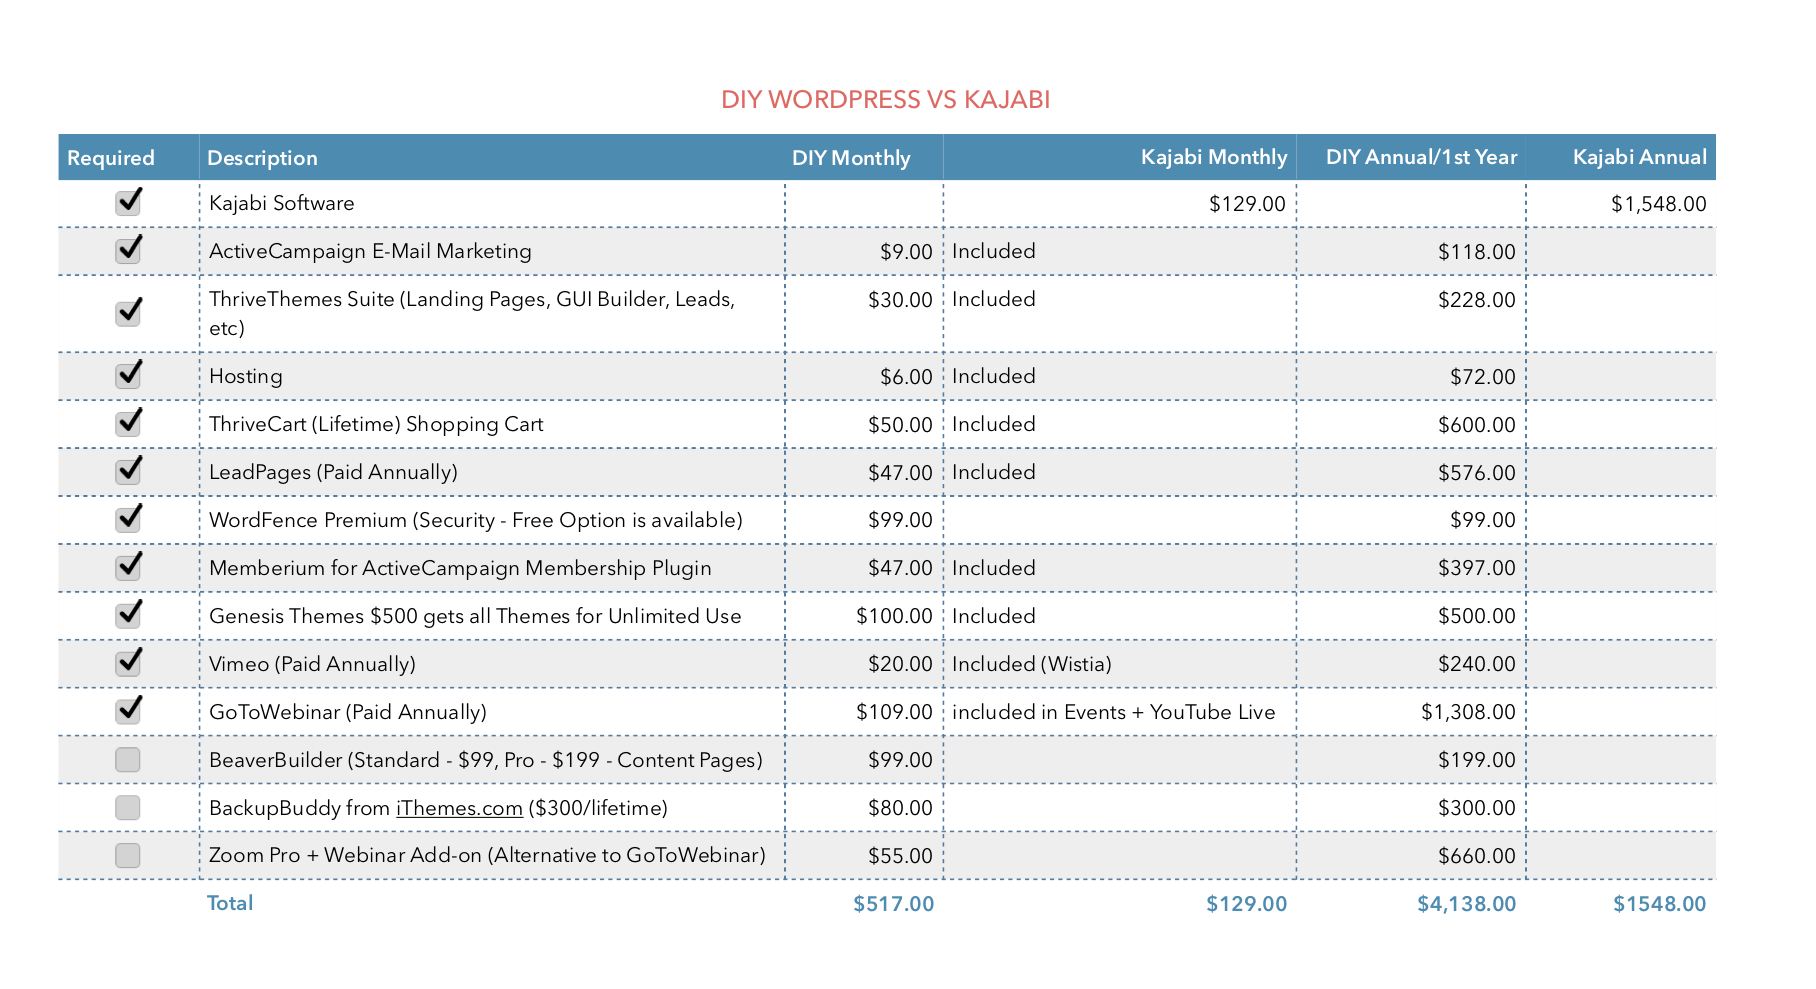 Cost Comparison of Kajabi vs WordPress